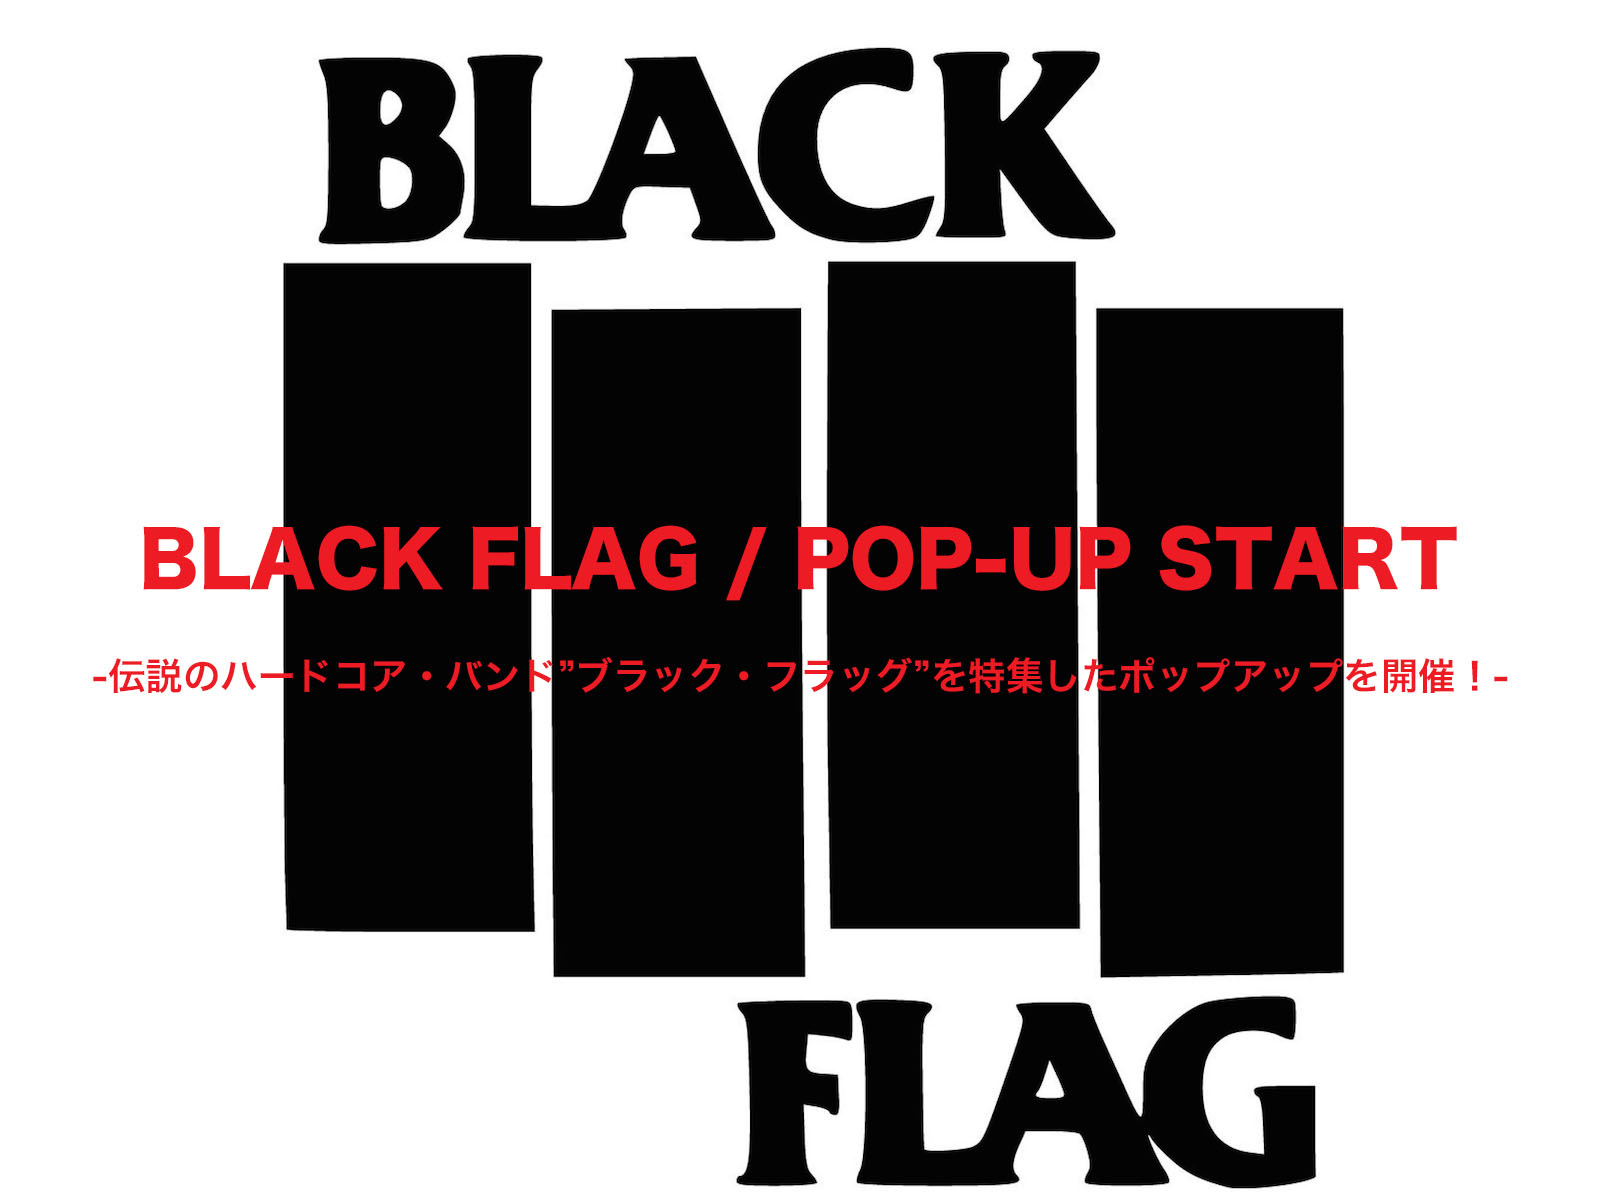 BLACK FLAG / POP-UP START